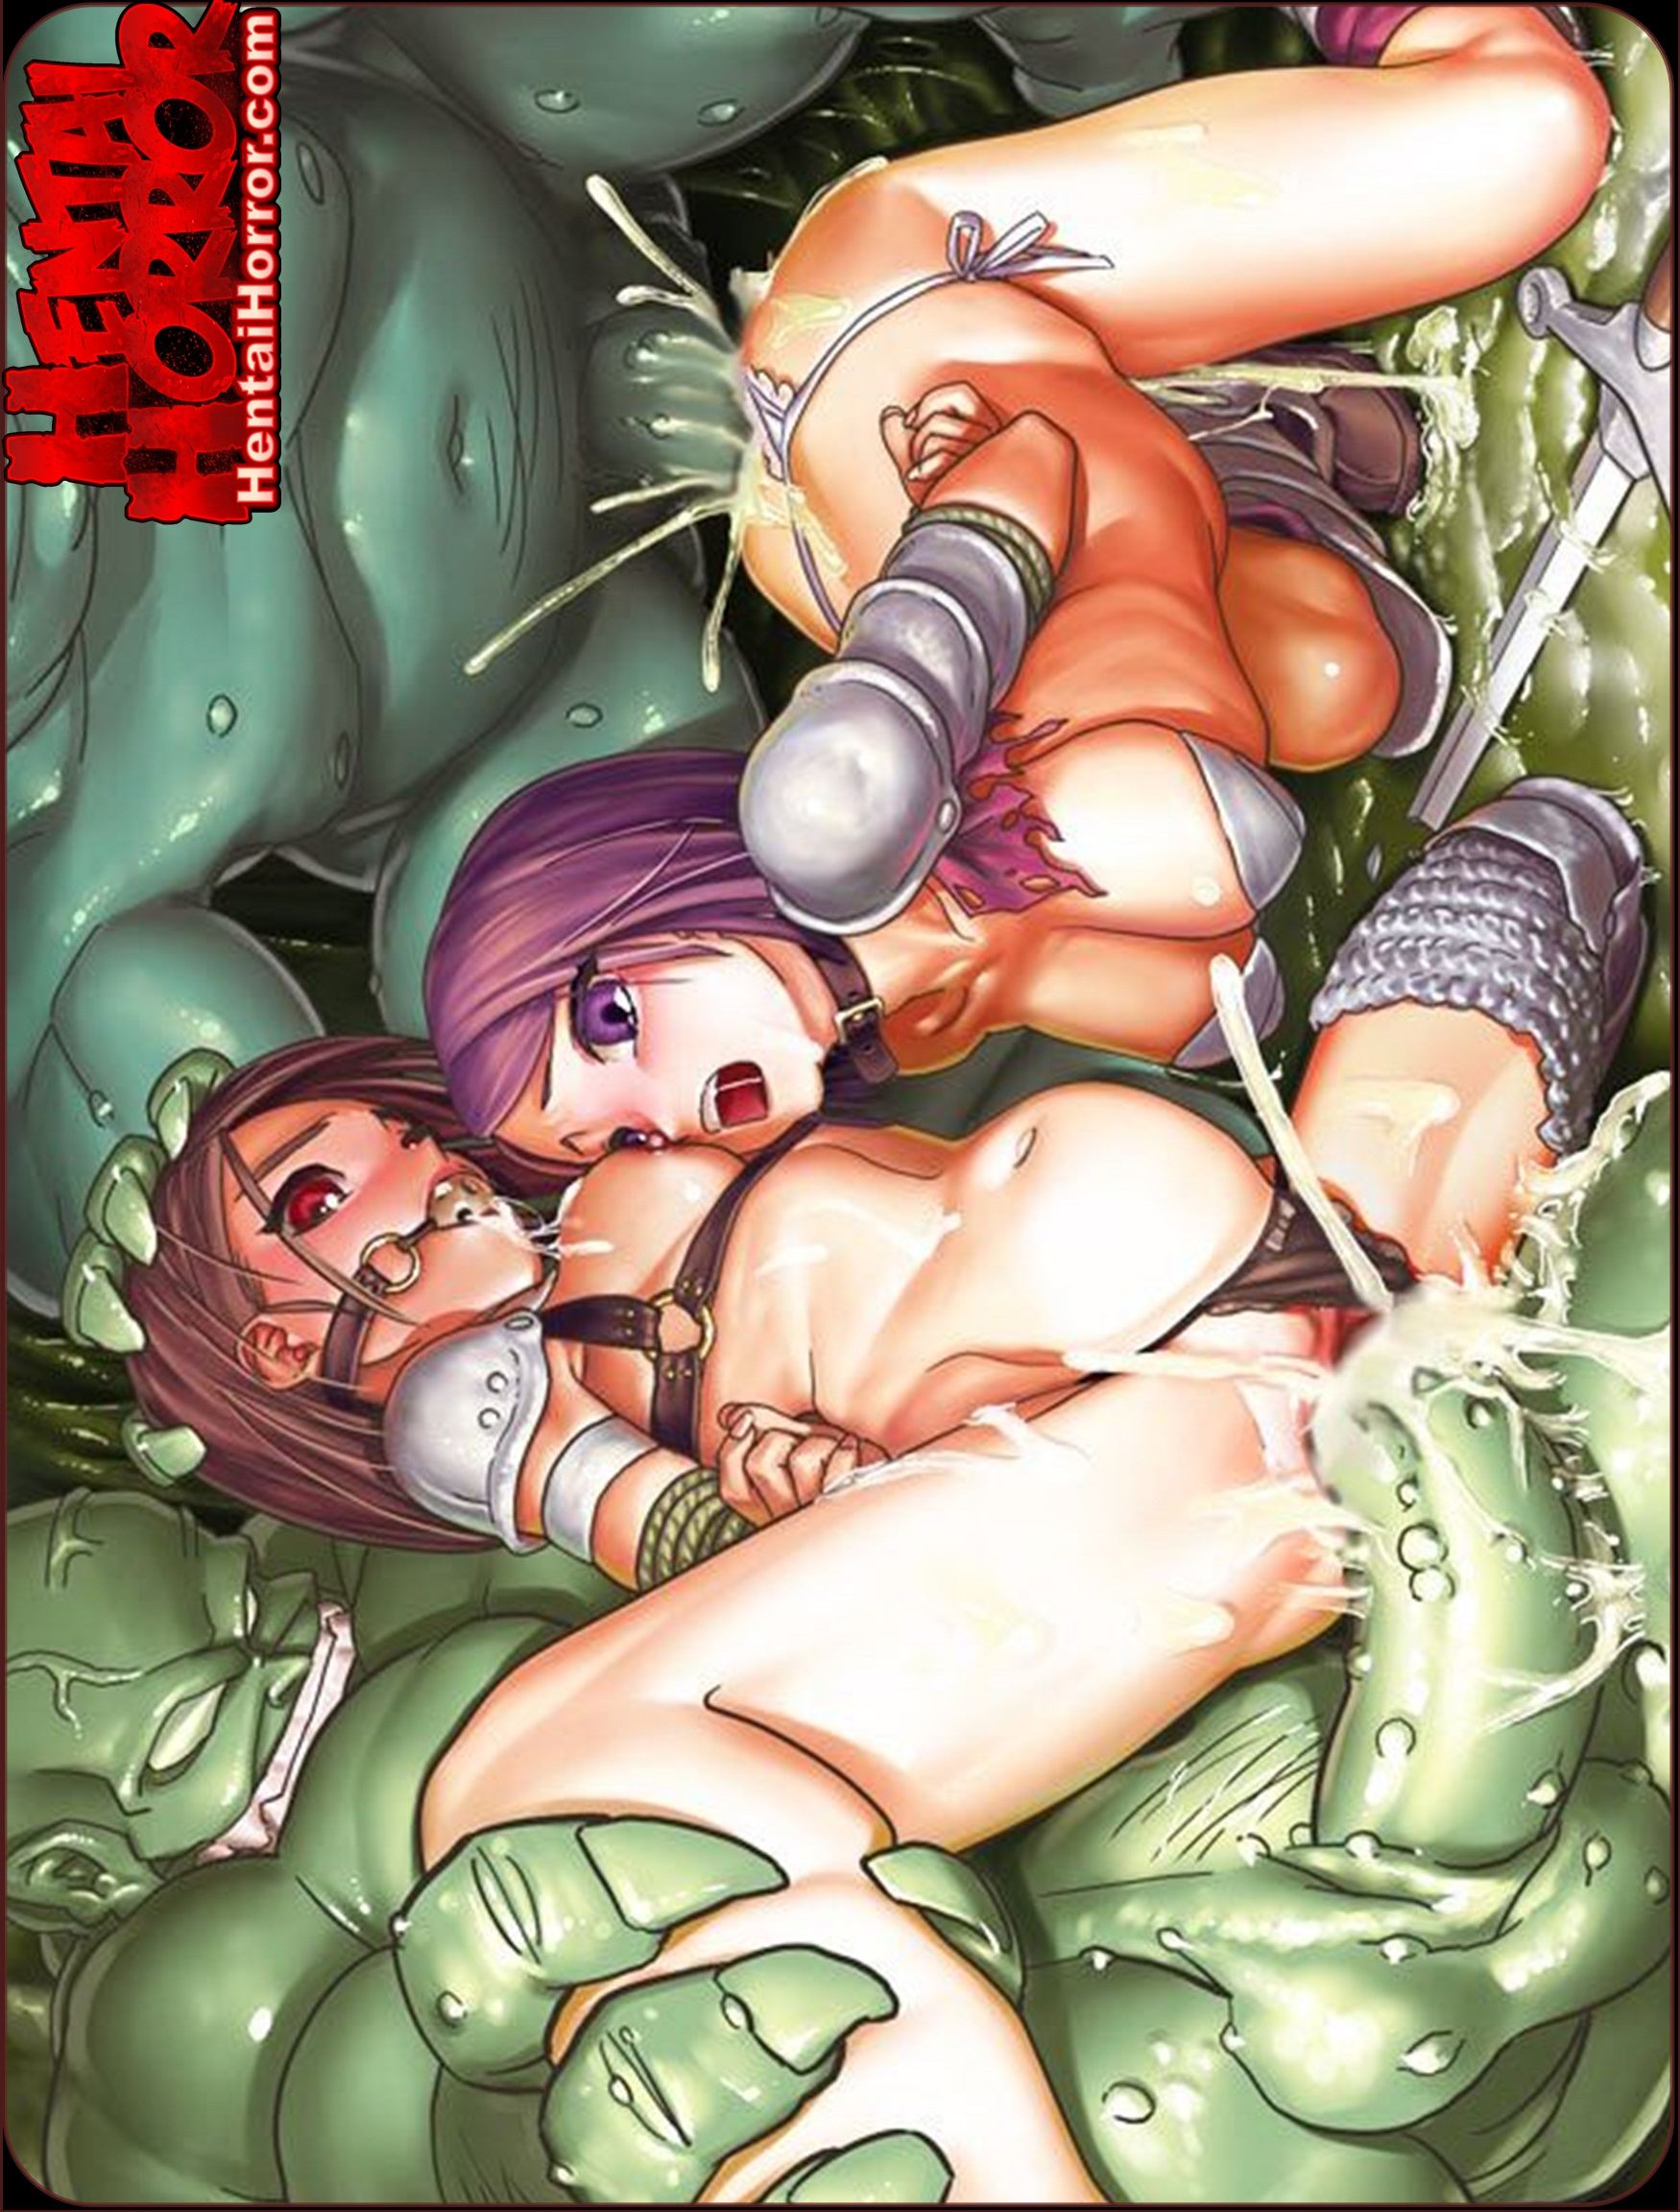 NSFW uncensored Dungeons & Dragons lolicon hentai monster cock sex porn art of babe gang raped by orc cocks.